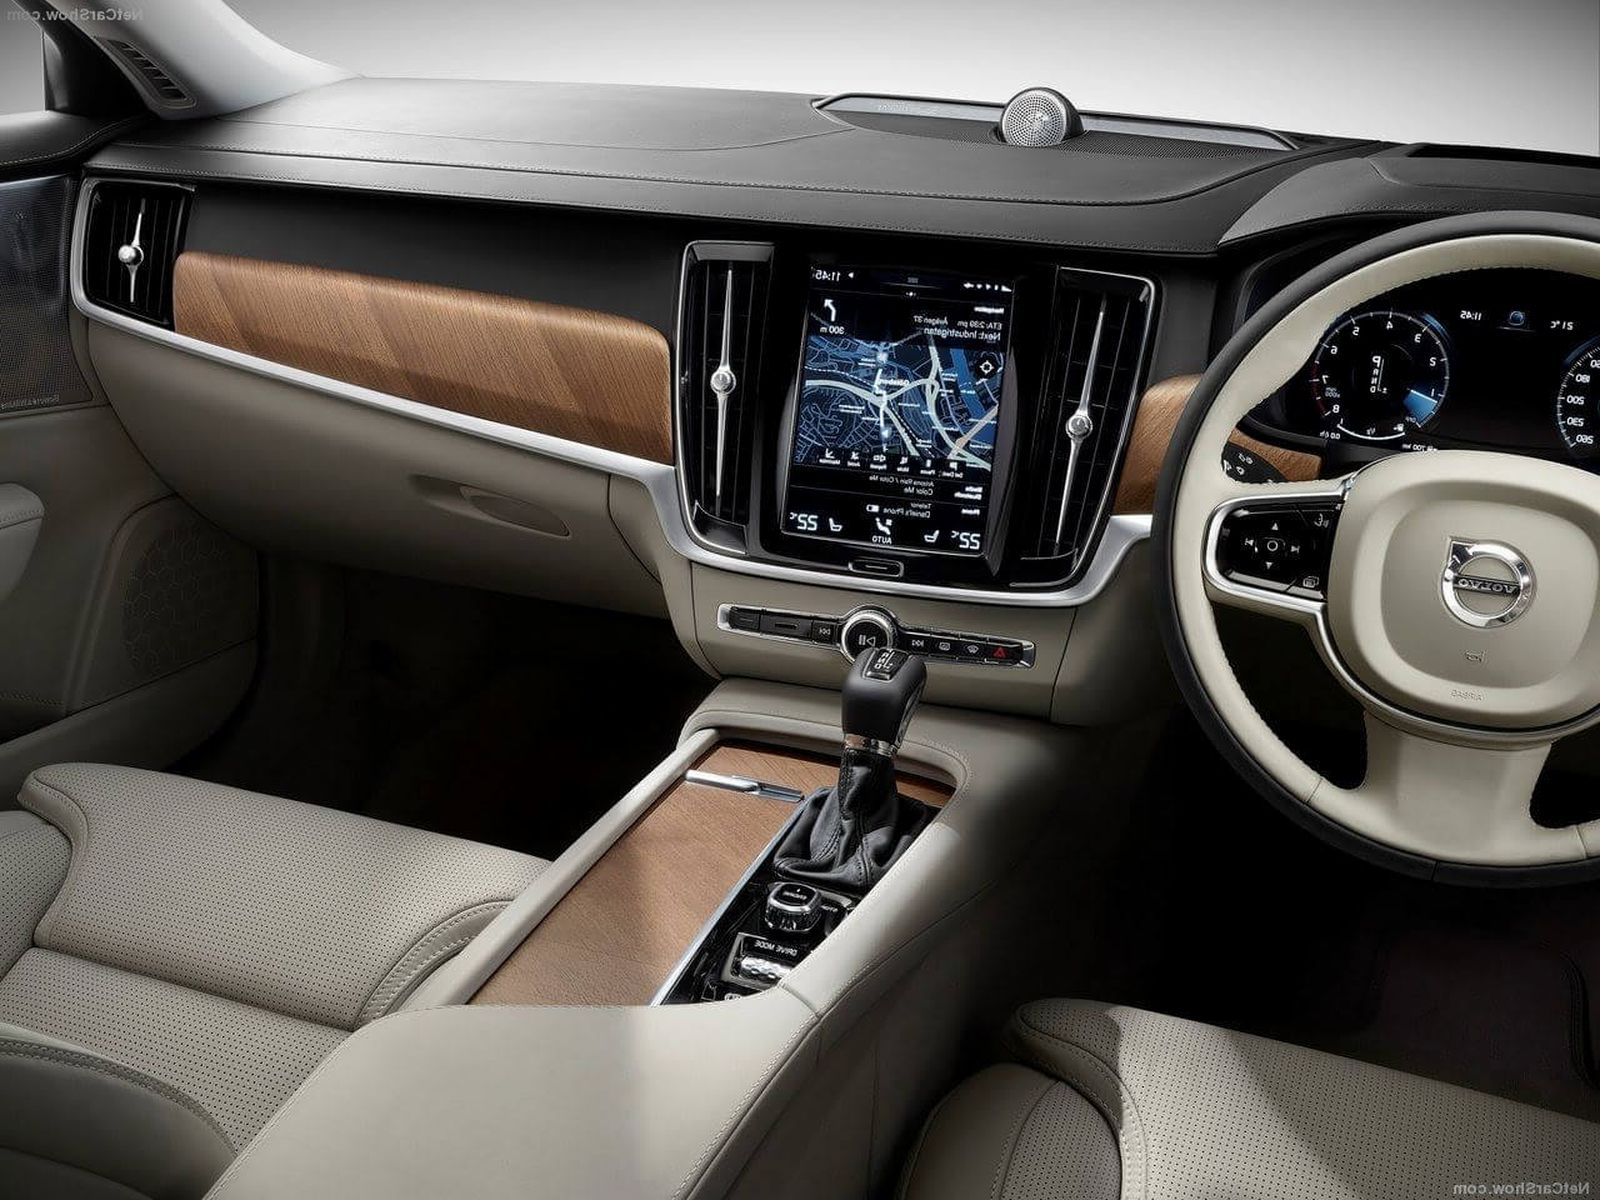 2018 Volvo XC90 interior features